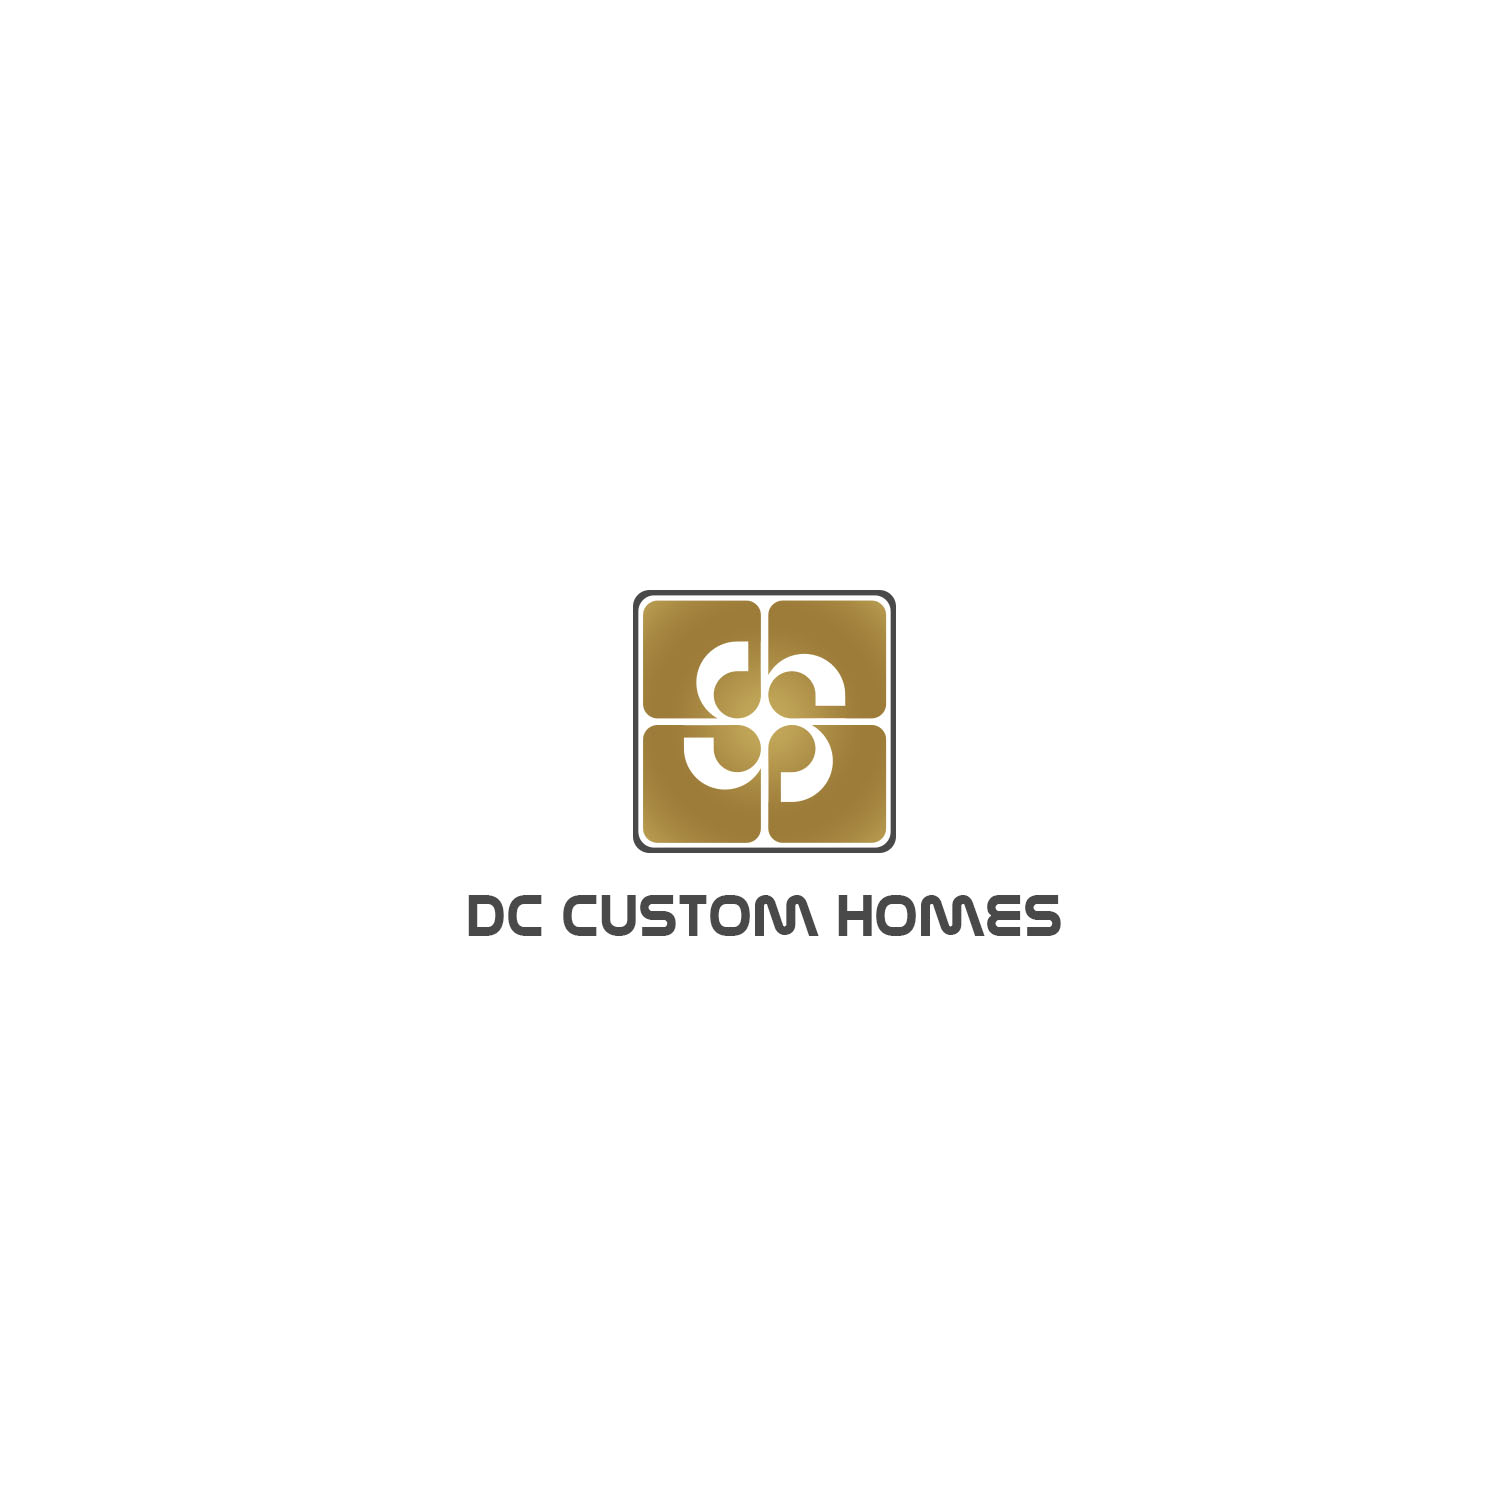 Logo Design by Private User - Entry No. 156 in the Logo Design Contest Creative Logo Design for DC Custom Homes.